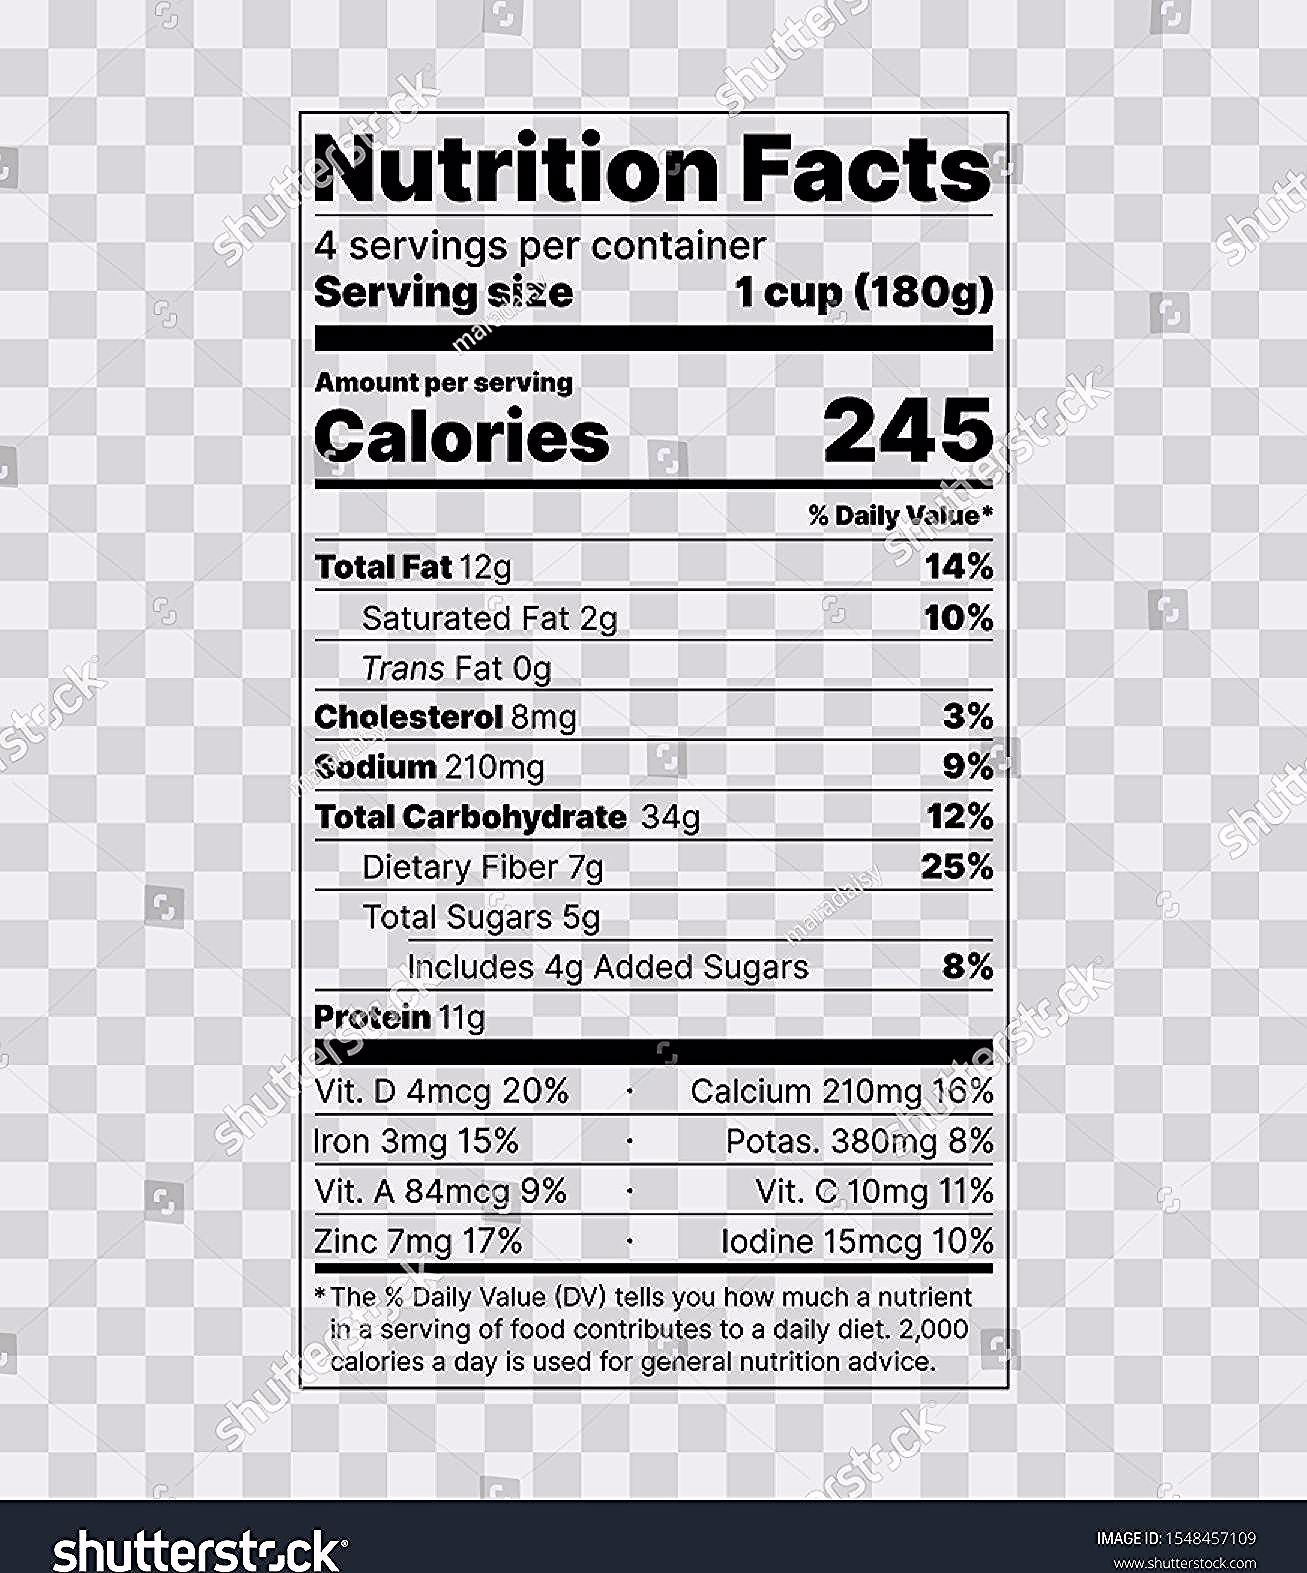 Nutrition Facts Label Food Information With Daily Value